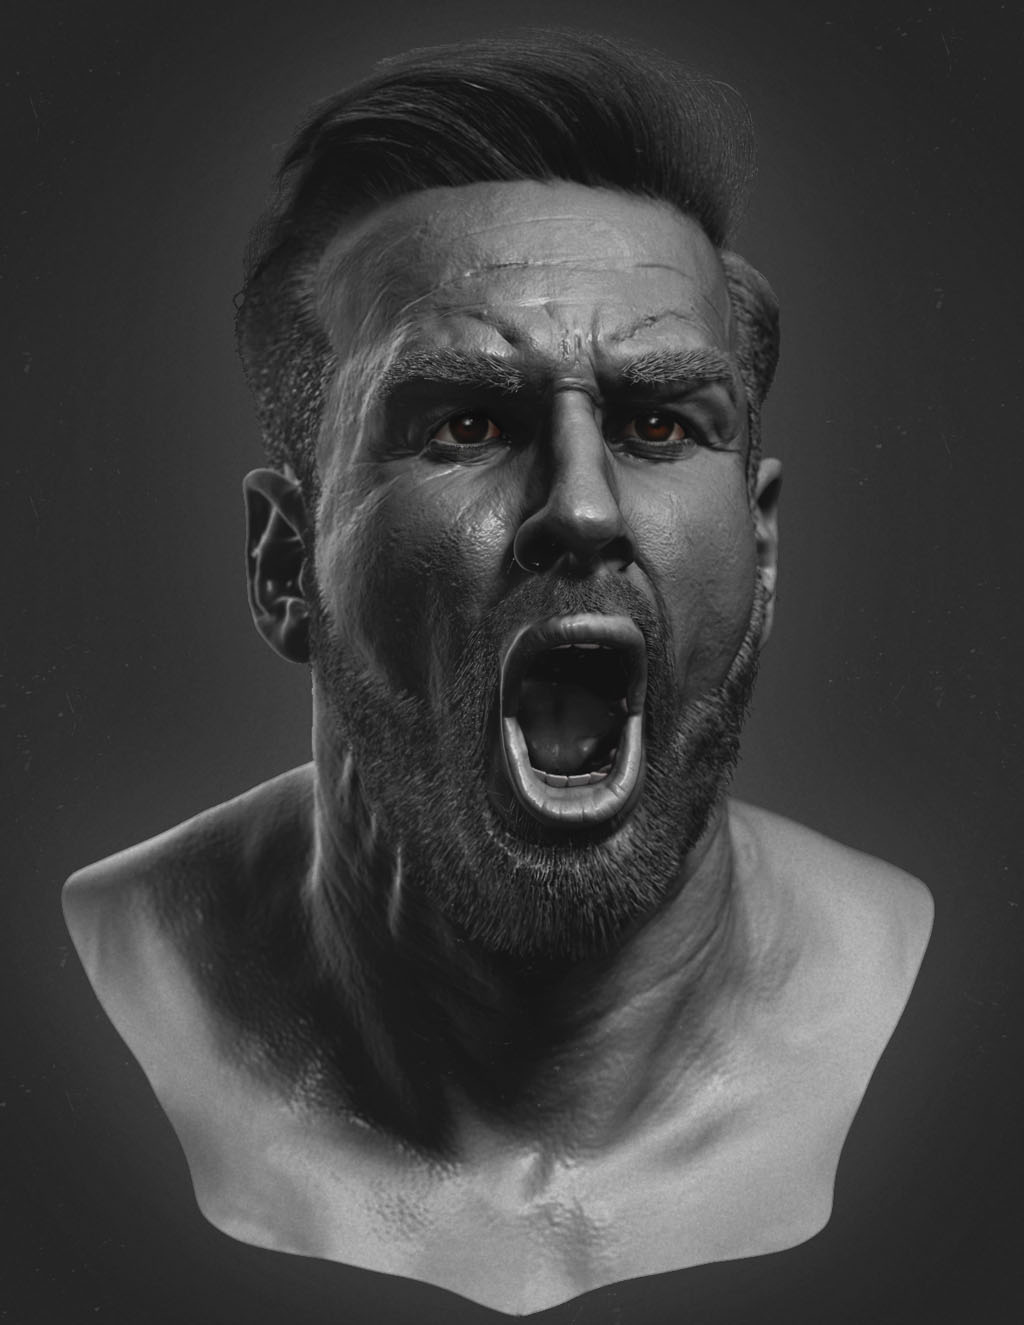 zbrush model face man by gaurav kumar